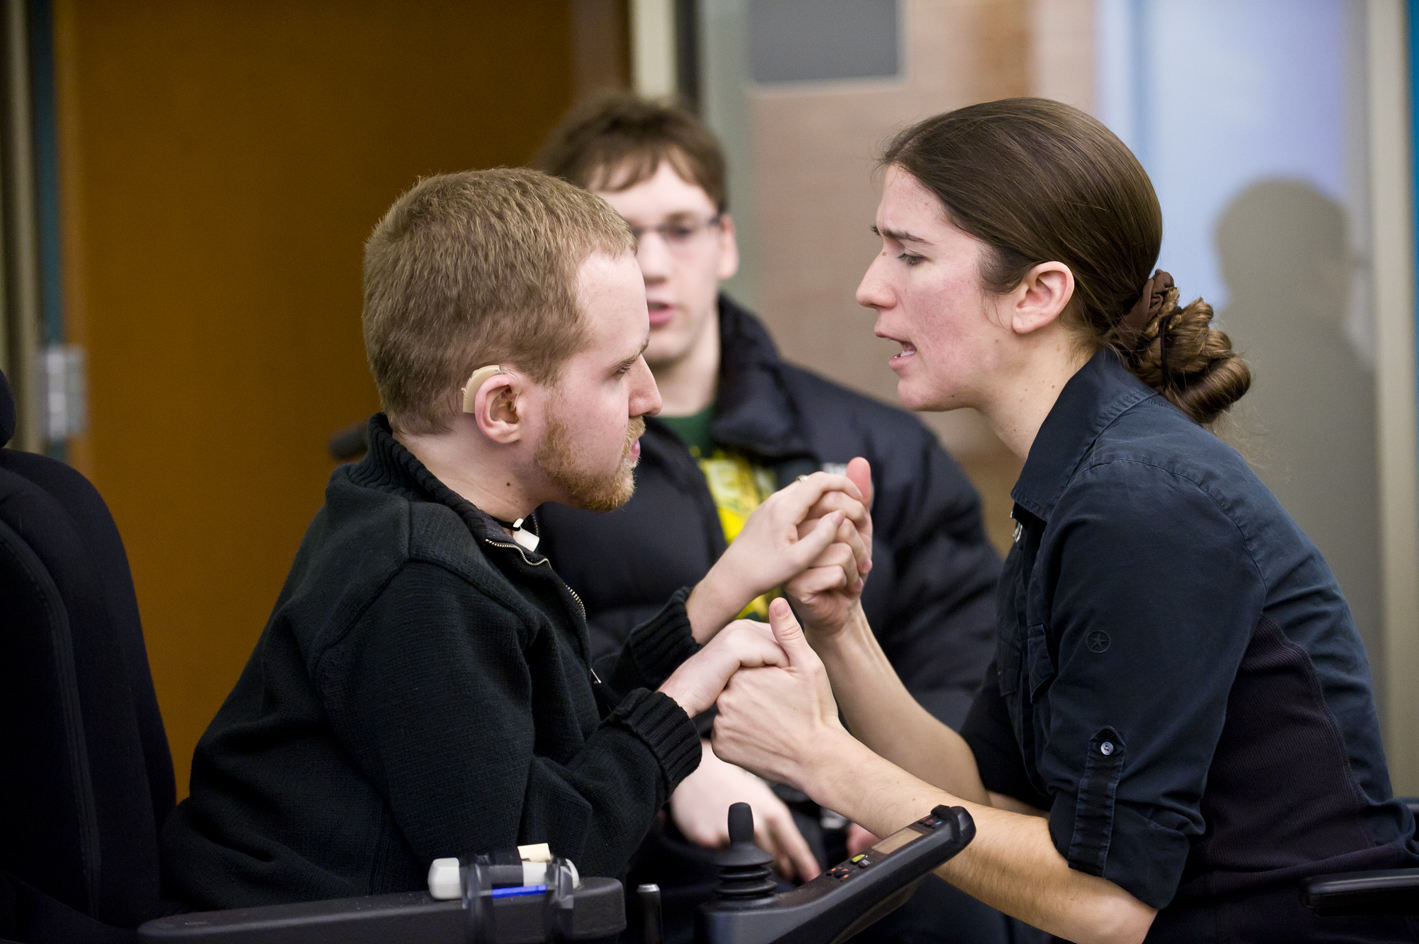 Photo of Zach Holler talking with a personal assistant.